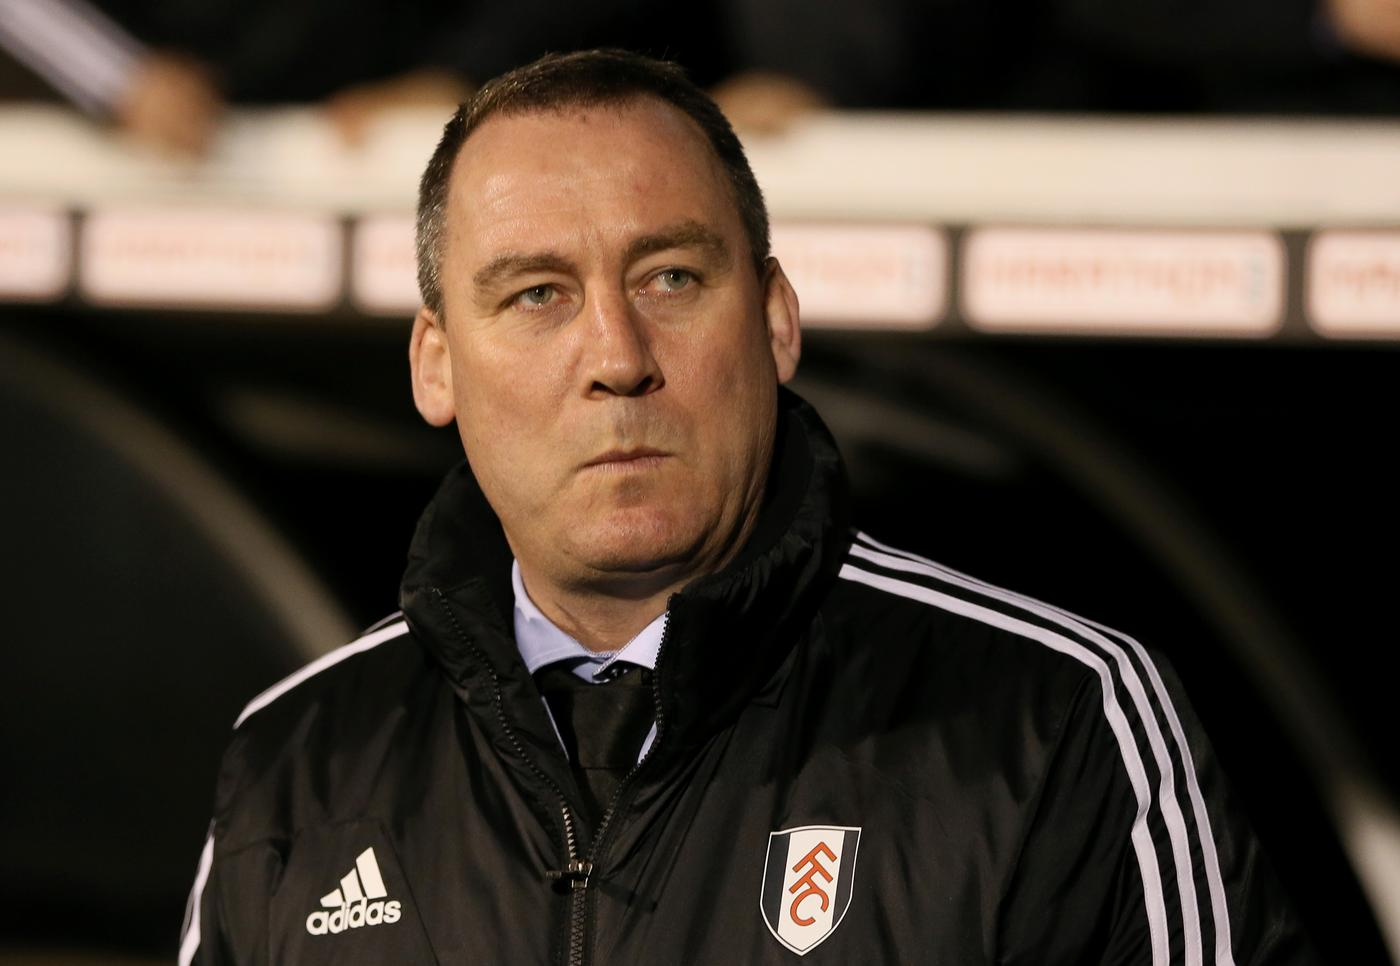 Former Manchester United coach Rene Meulensteen could join Liverpool